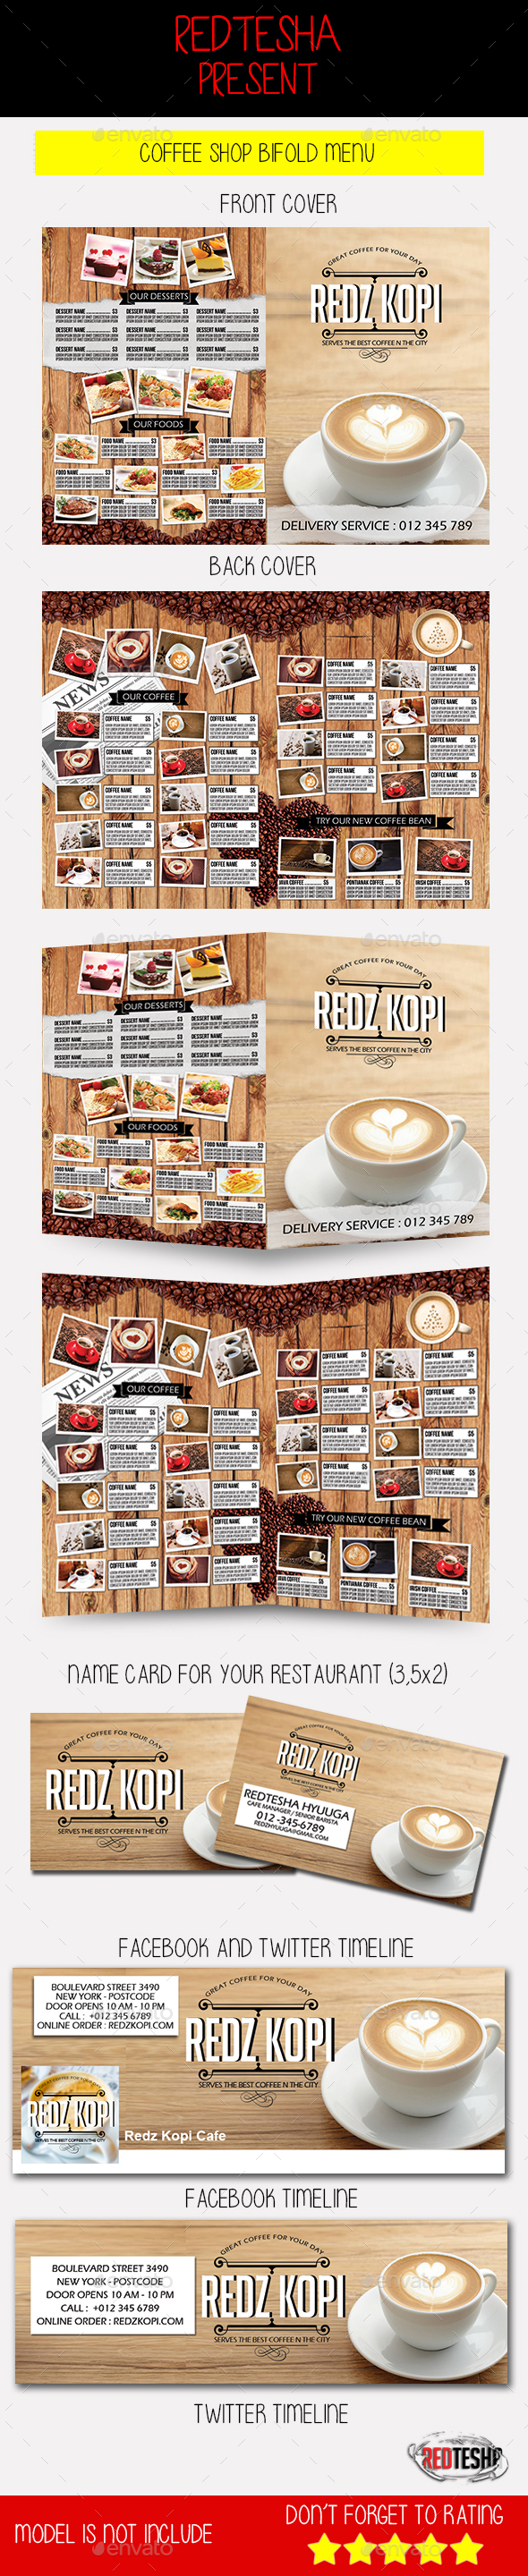 Coffee Shop Bifold Menu - Food Menus Print Templates